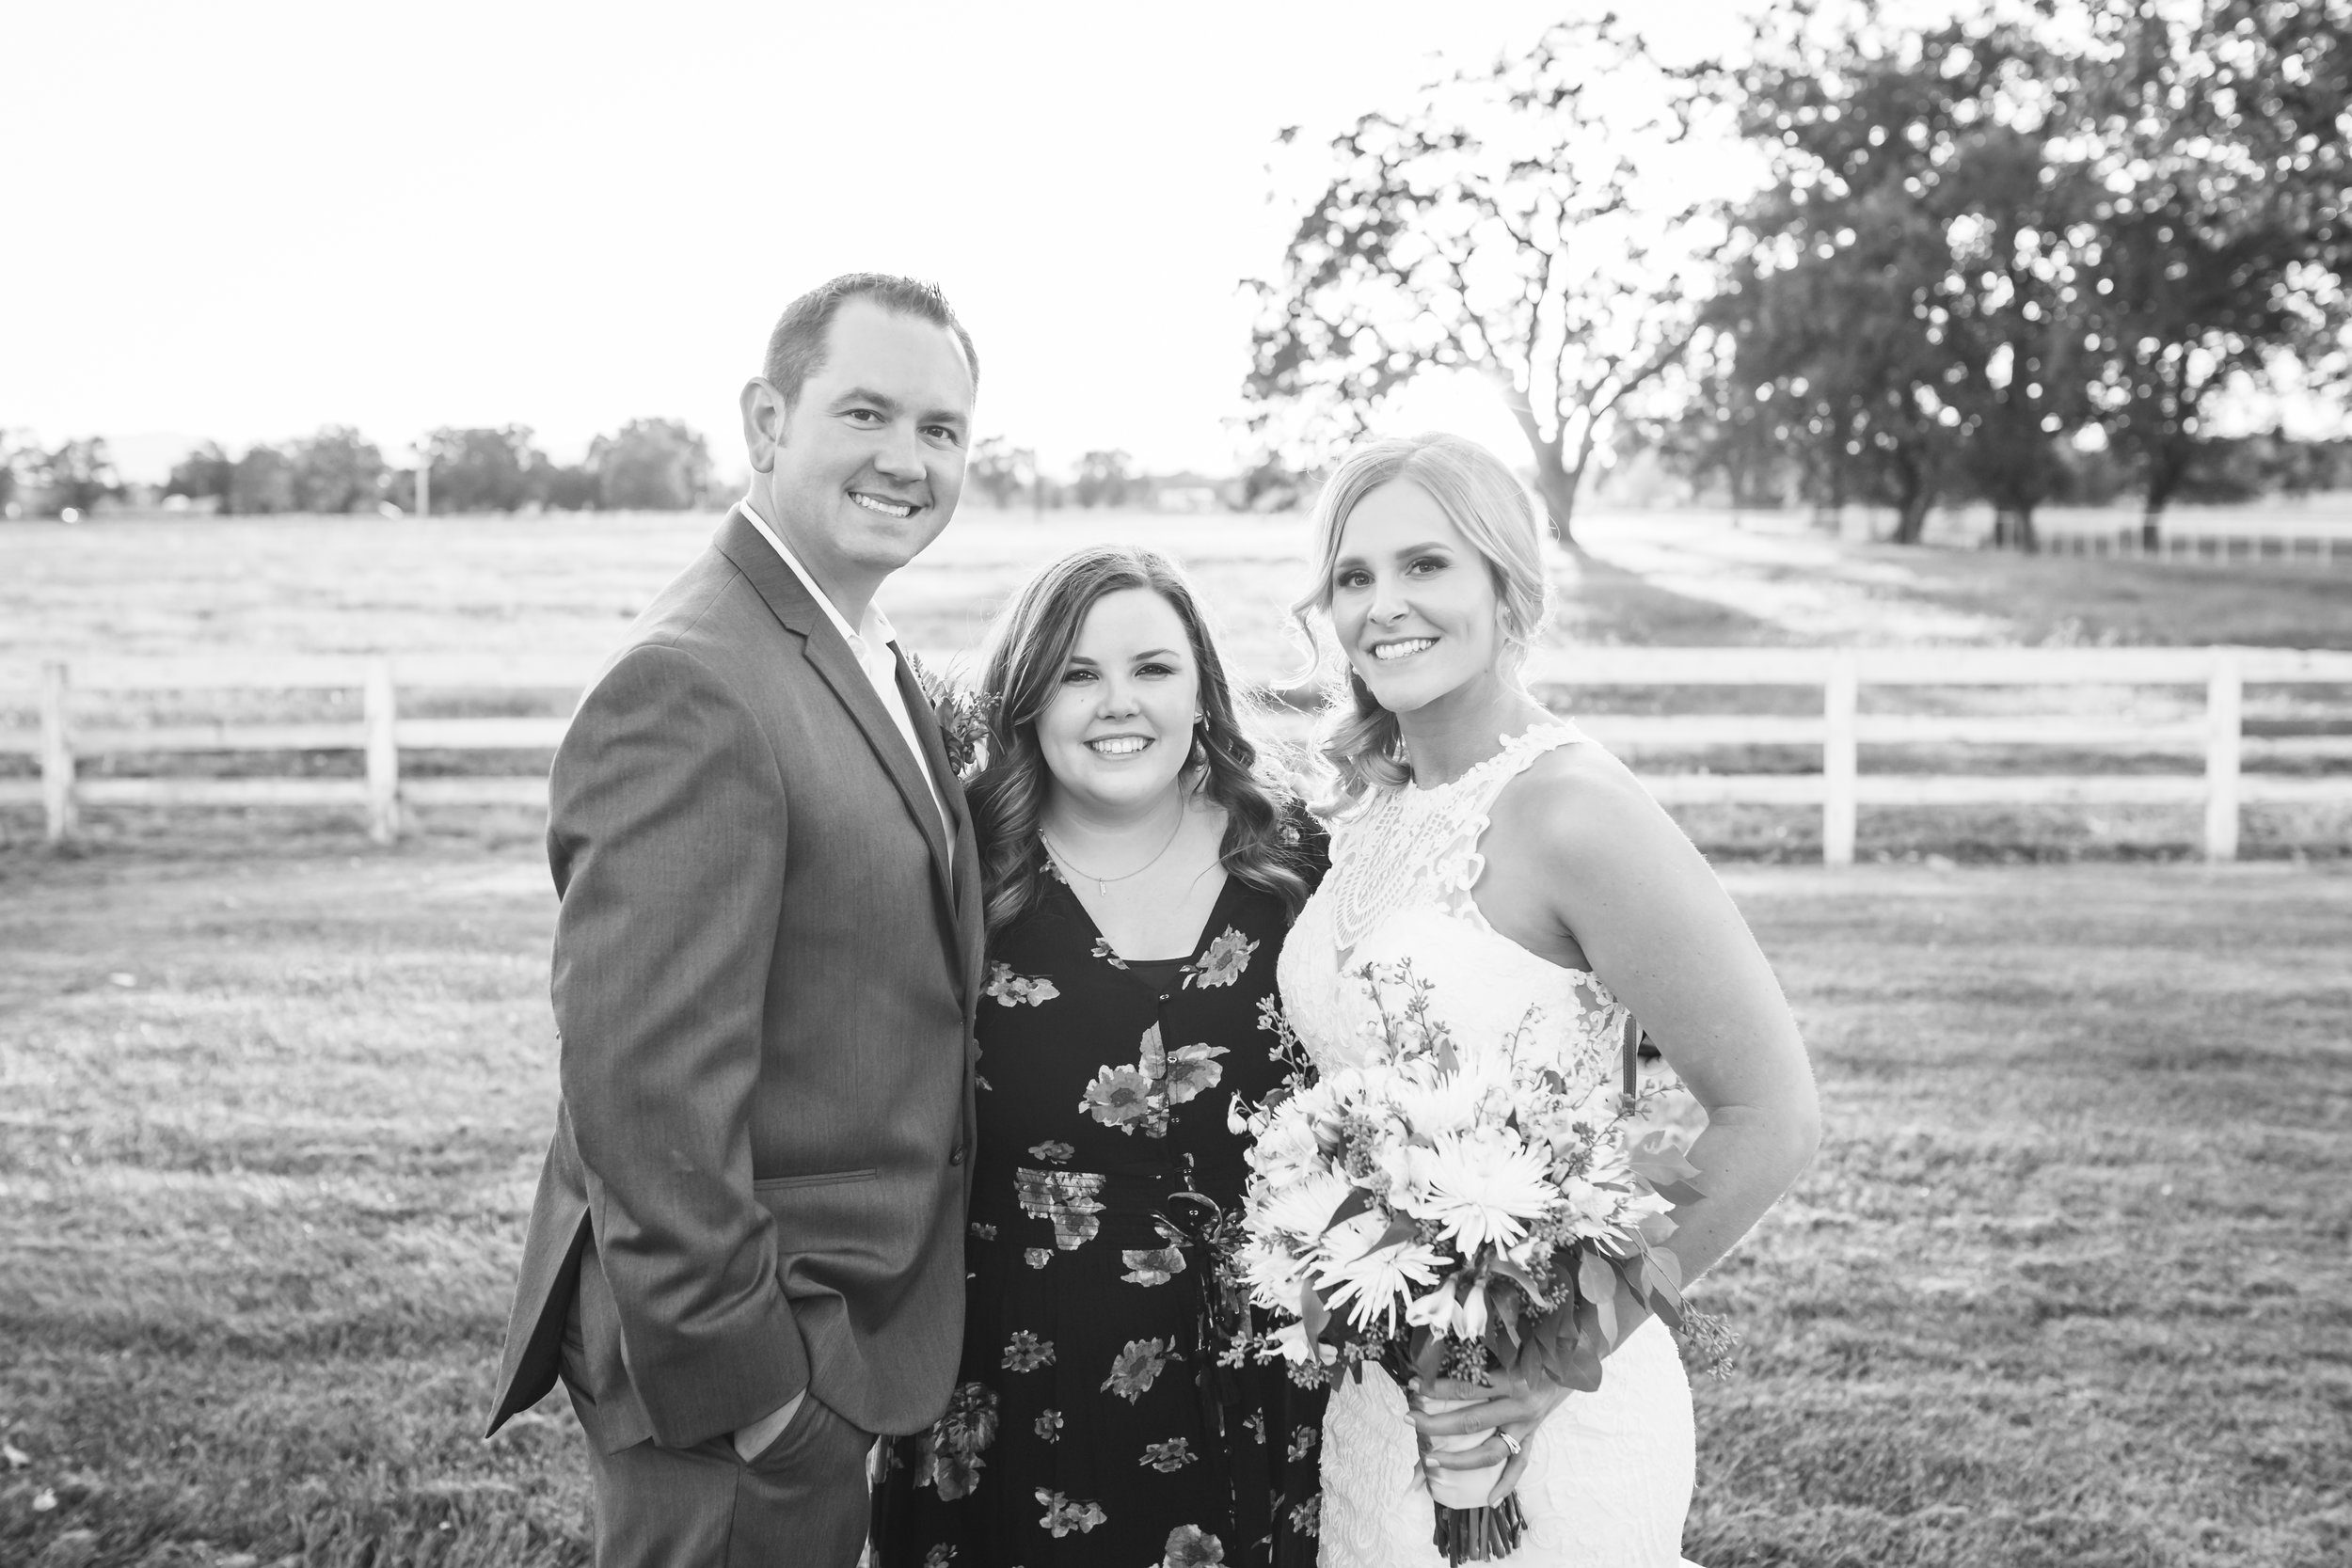 Even the photographer gets a photo with the bride and groom!